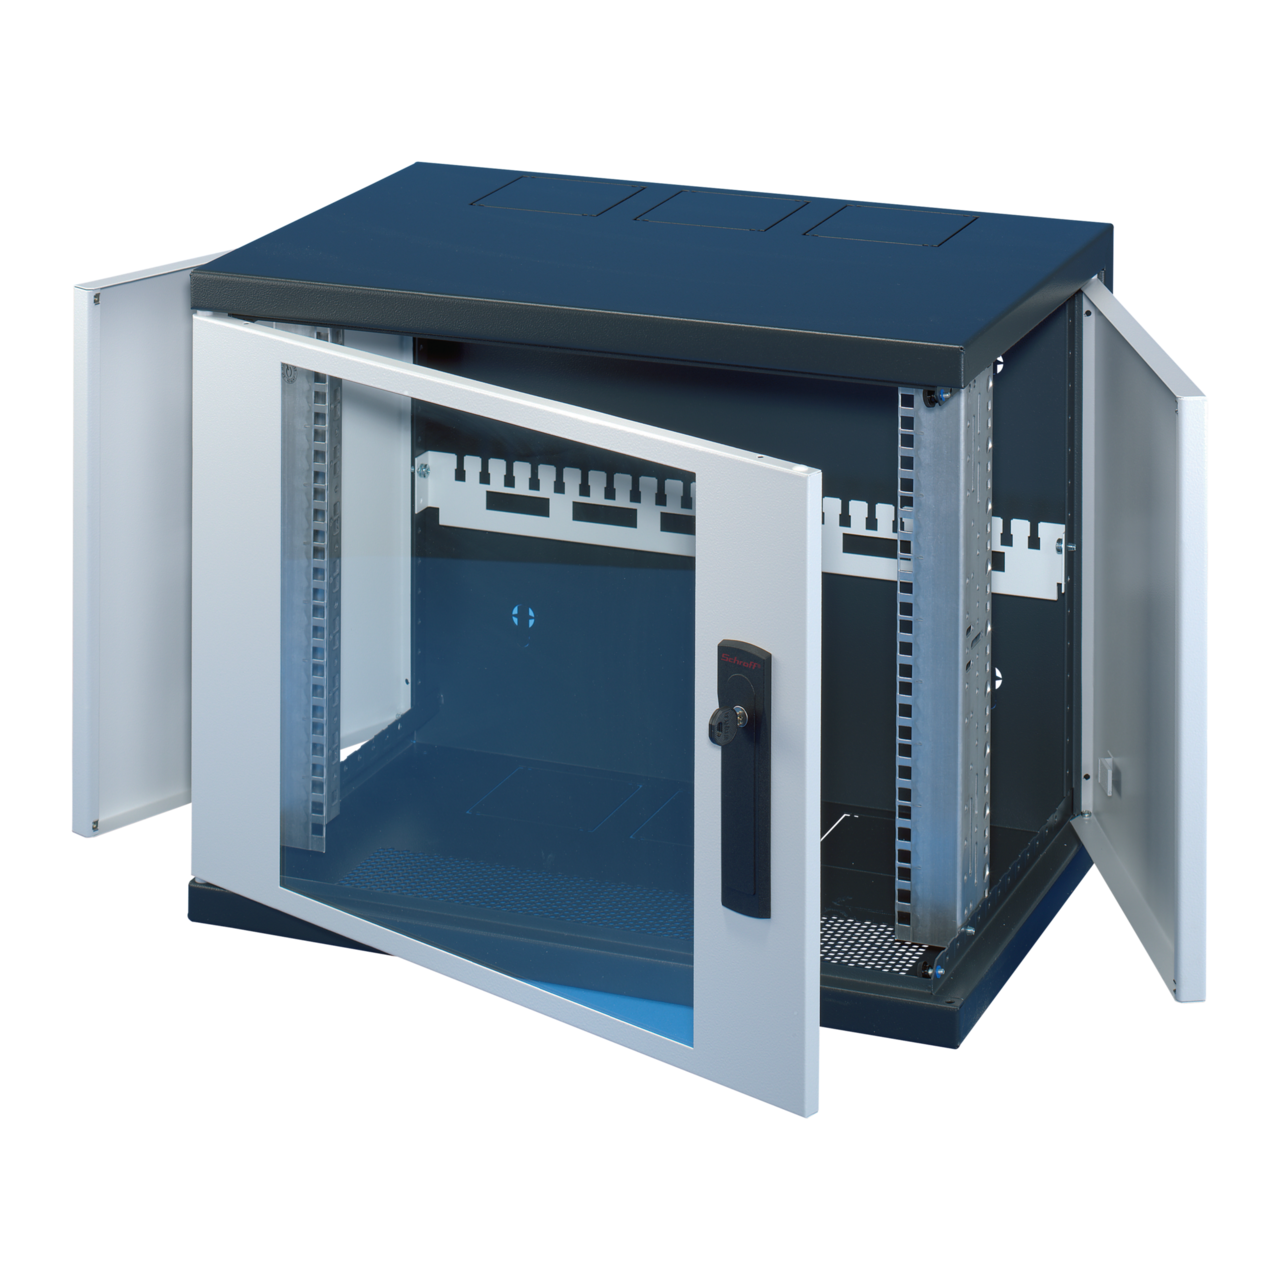 Image for Epcase - wallmount enclosure, 19